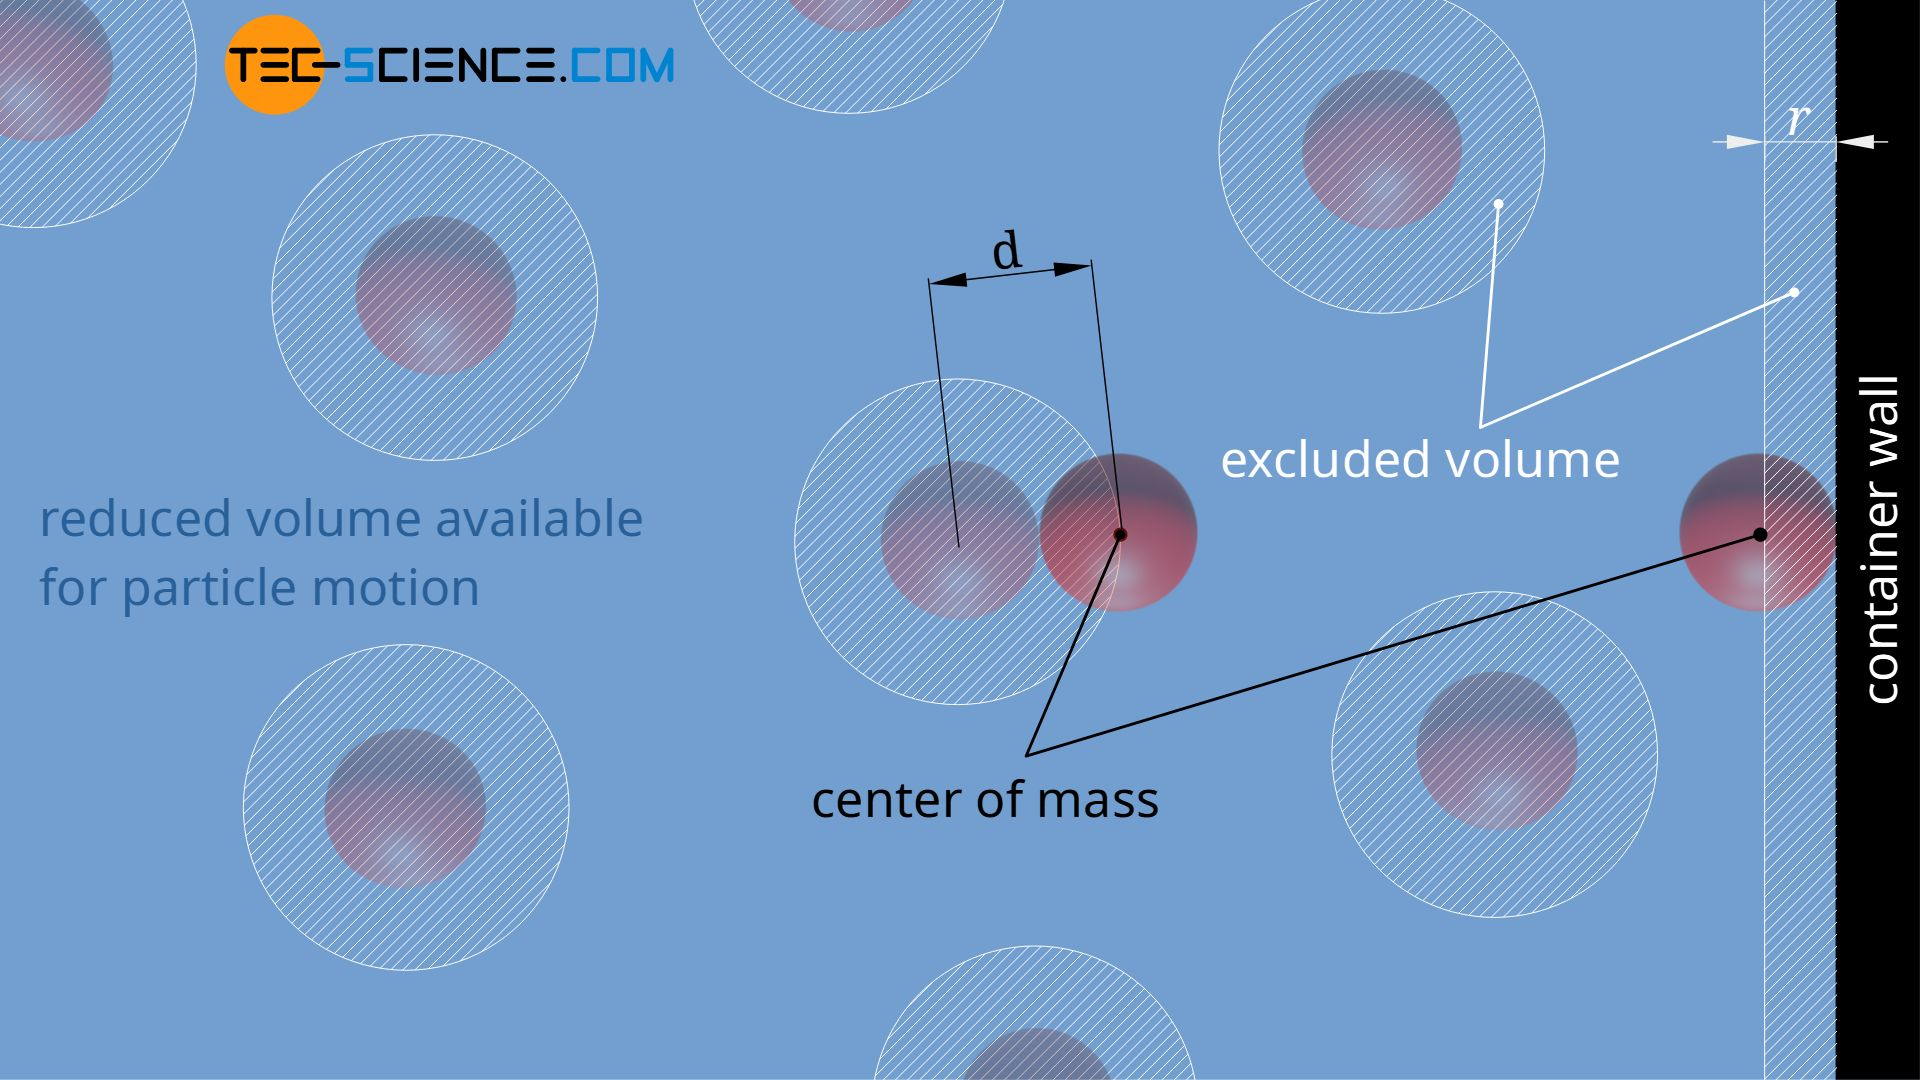 Taking into account the excluded volume due to the size of the molecules